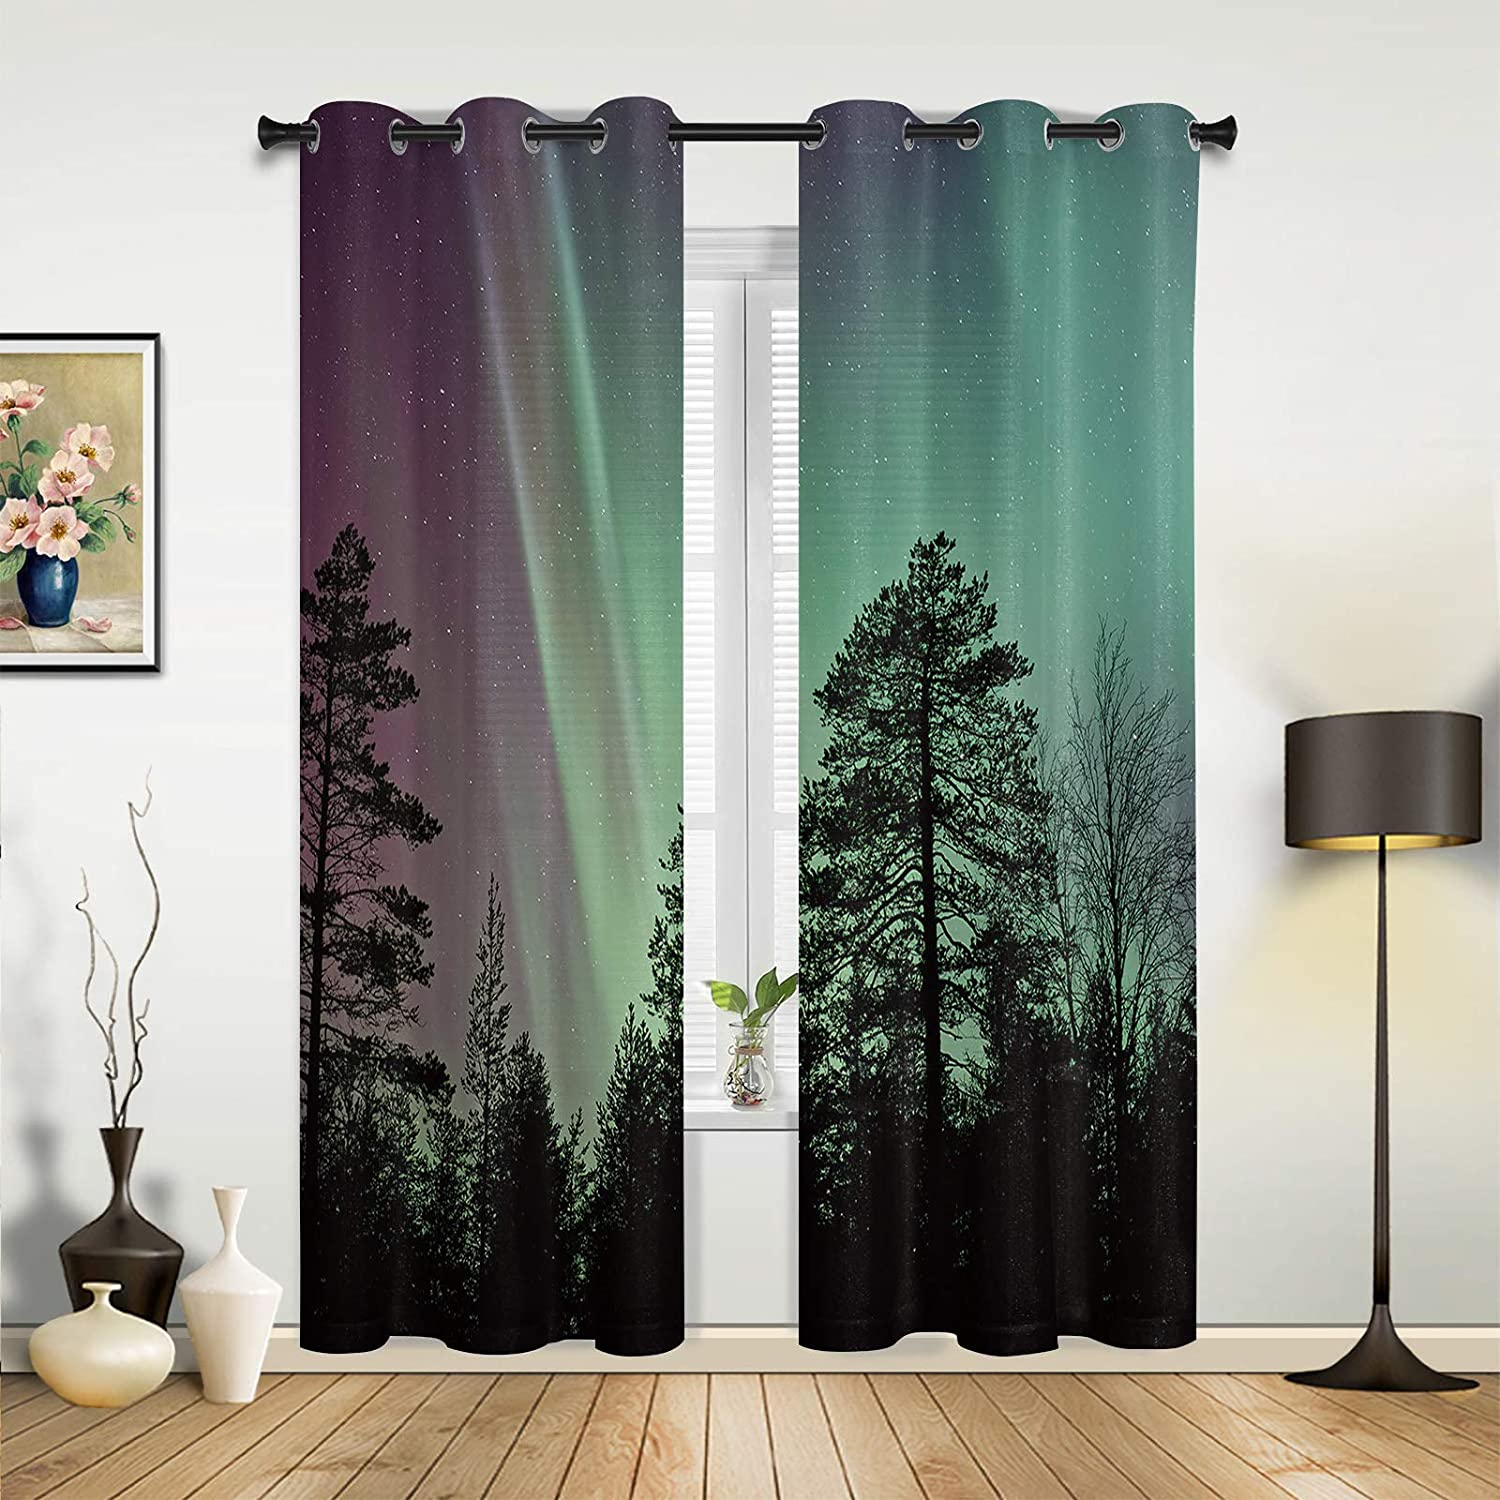 Window Sheer Award Credence Curtains for Bedroom Mysterious Room Living Dreamy